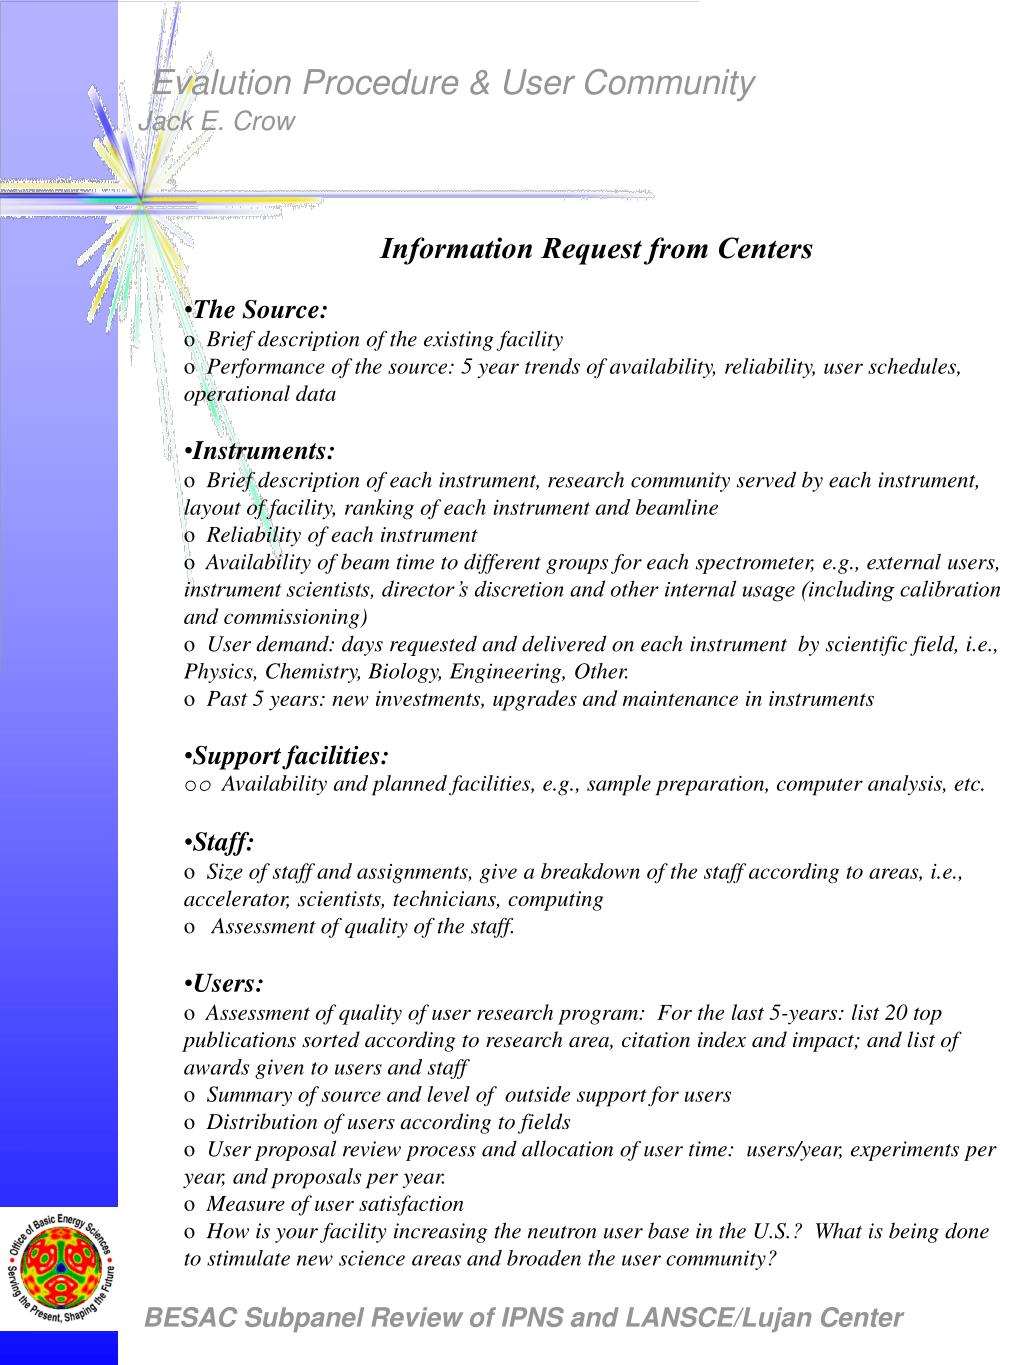 Information Request from Centers